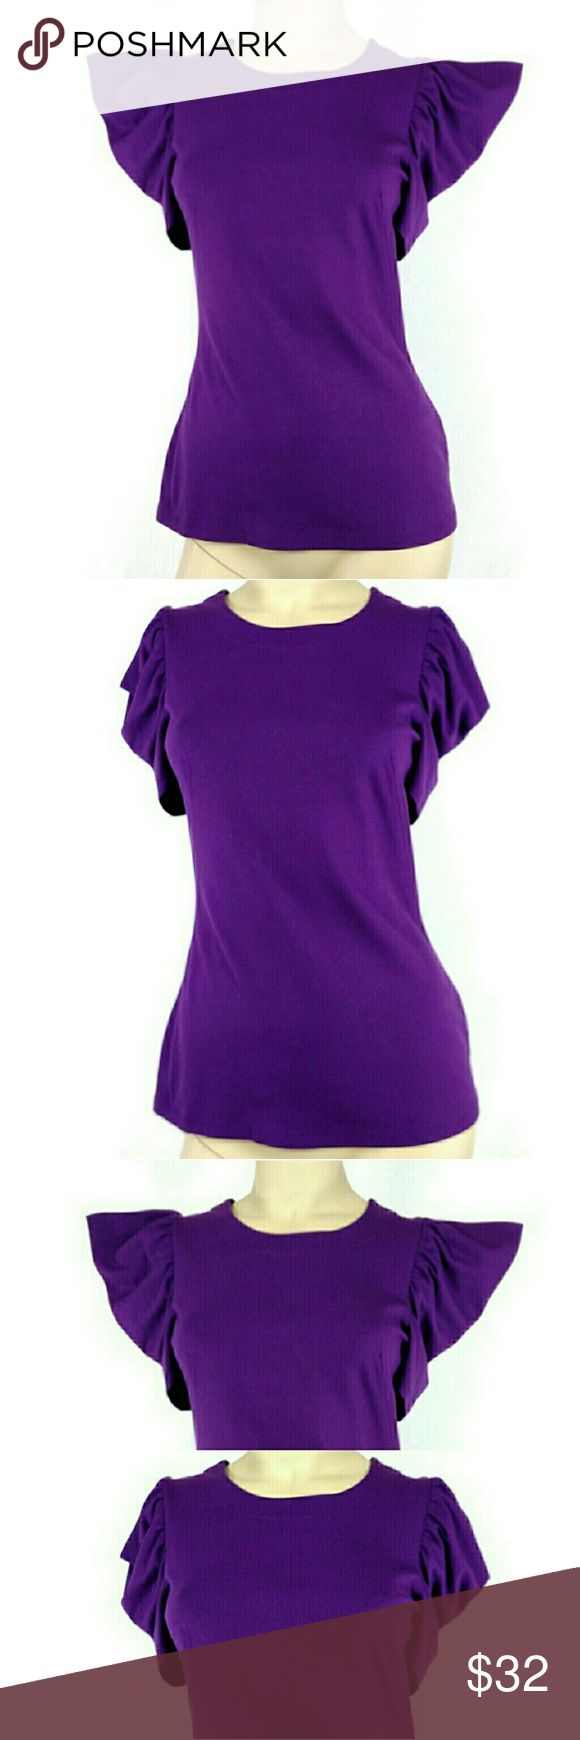 FRENCH CONNECTION PURPLE knit TOP, SMALL FRENCH CONNECTION PURPLE knit TOP. SMALL.Super cute sleeves. Brand new without tags. 128-32 French Connection Tops Blouses